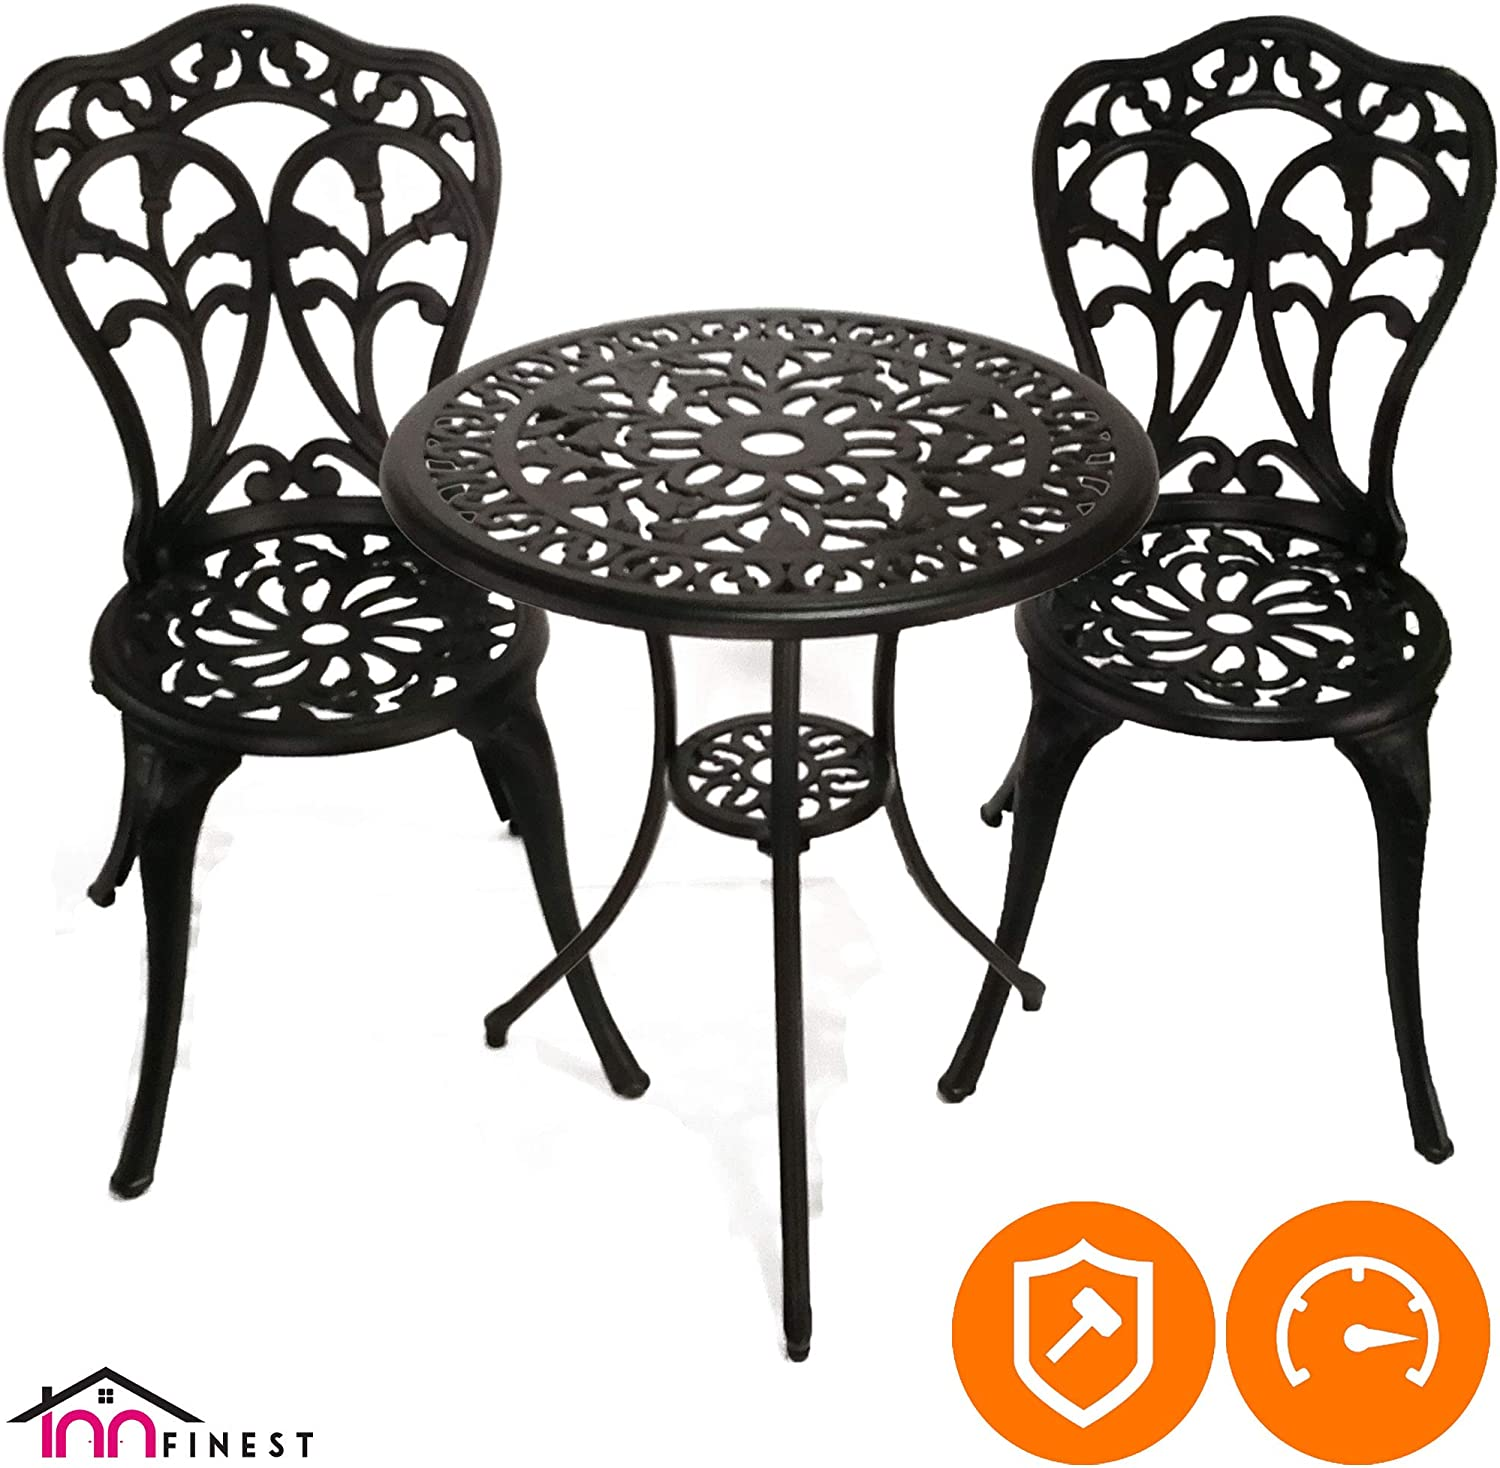 InnFinest 3-Piece Patio Bistro Dining Set – Cast Aluminum Table and Chairs – Outdoor Furniture Tulip Design – with Umbrella Hole – Ergonomic Rust-Resistant – for Porch Backyard Garden Balcony Black